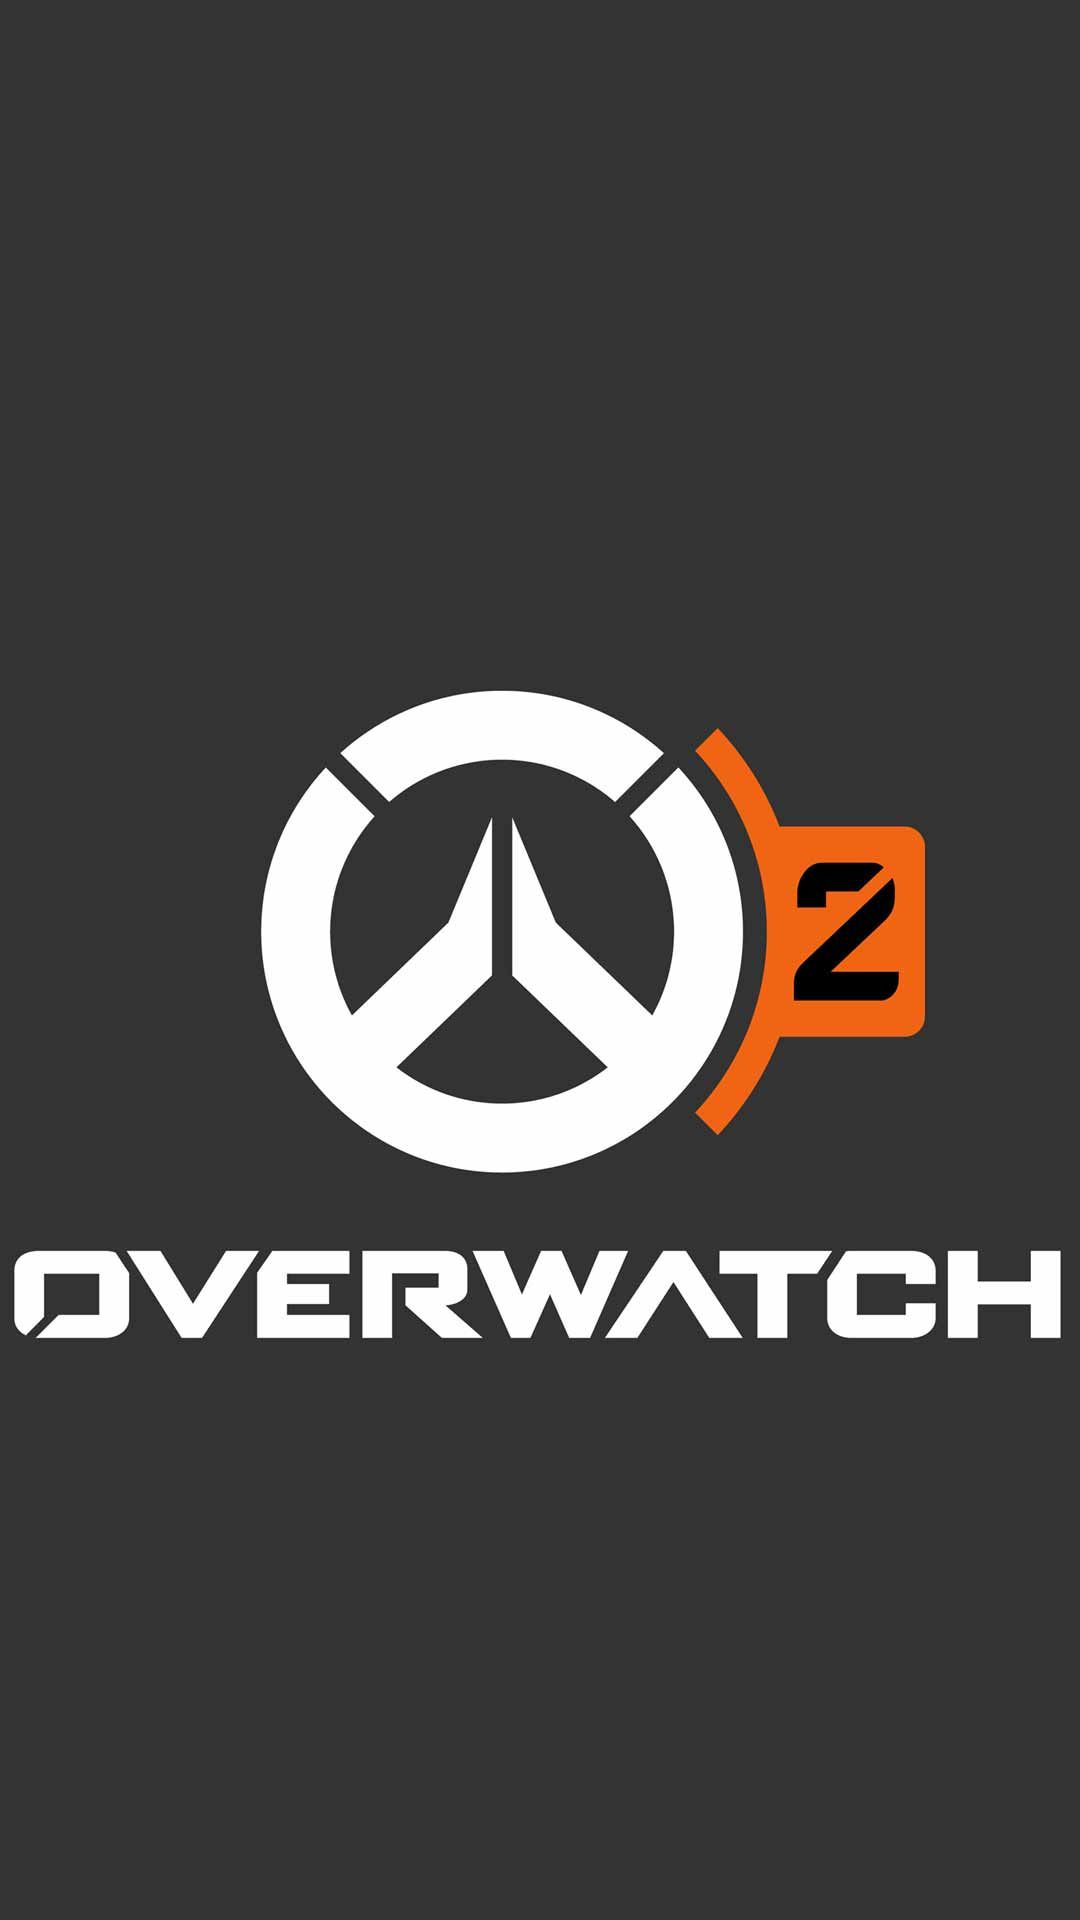 Overwatch 2 Wallpaper Hd Phone Backgrounds Characters Logo Art Poster For Iphone Android Screen In 2020 Overwatch Wallpapers Overwatch Phone Backgrounds